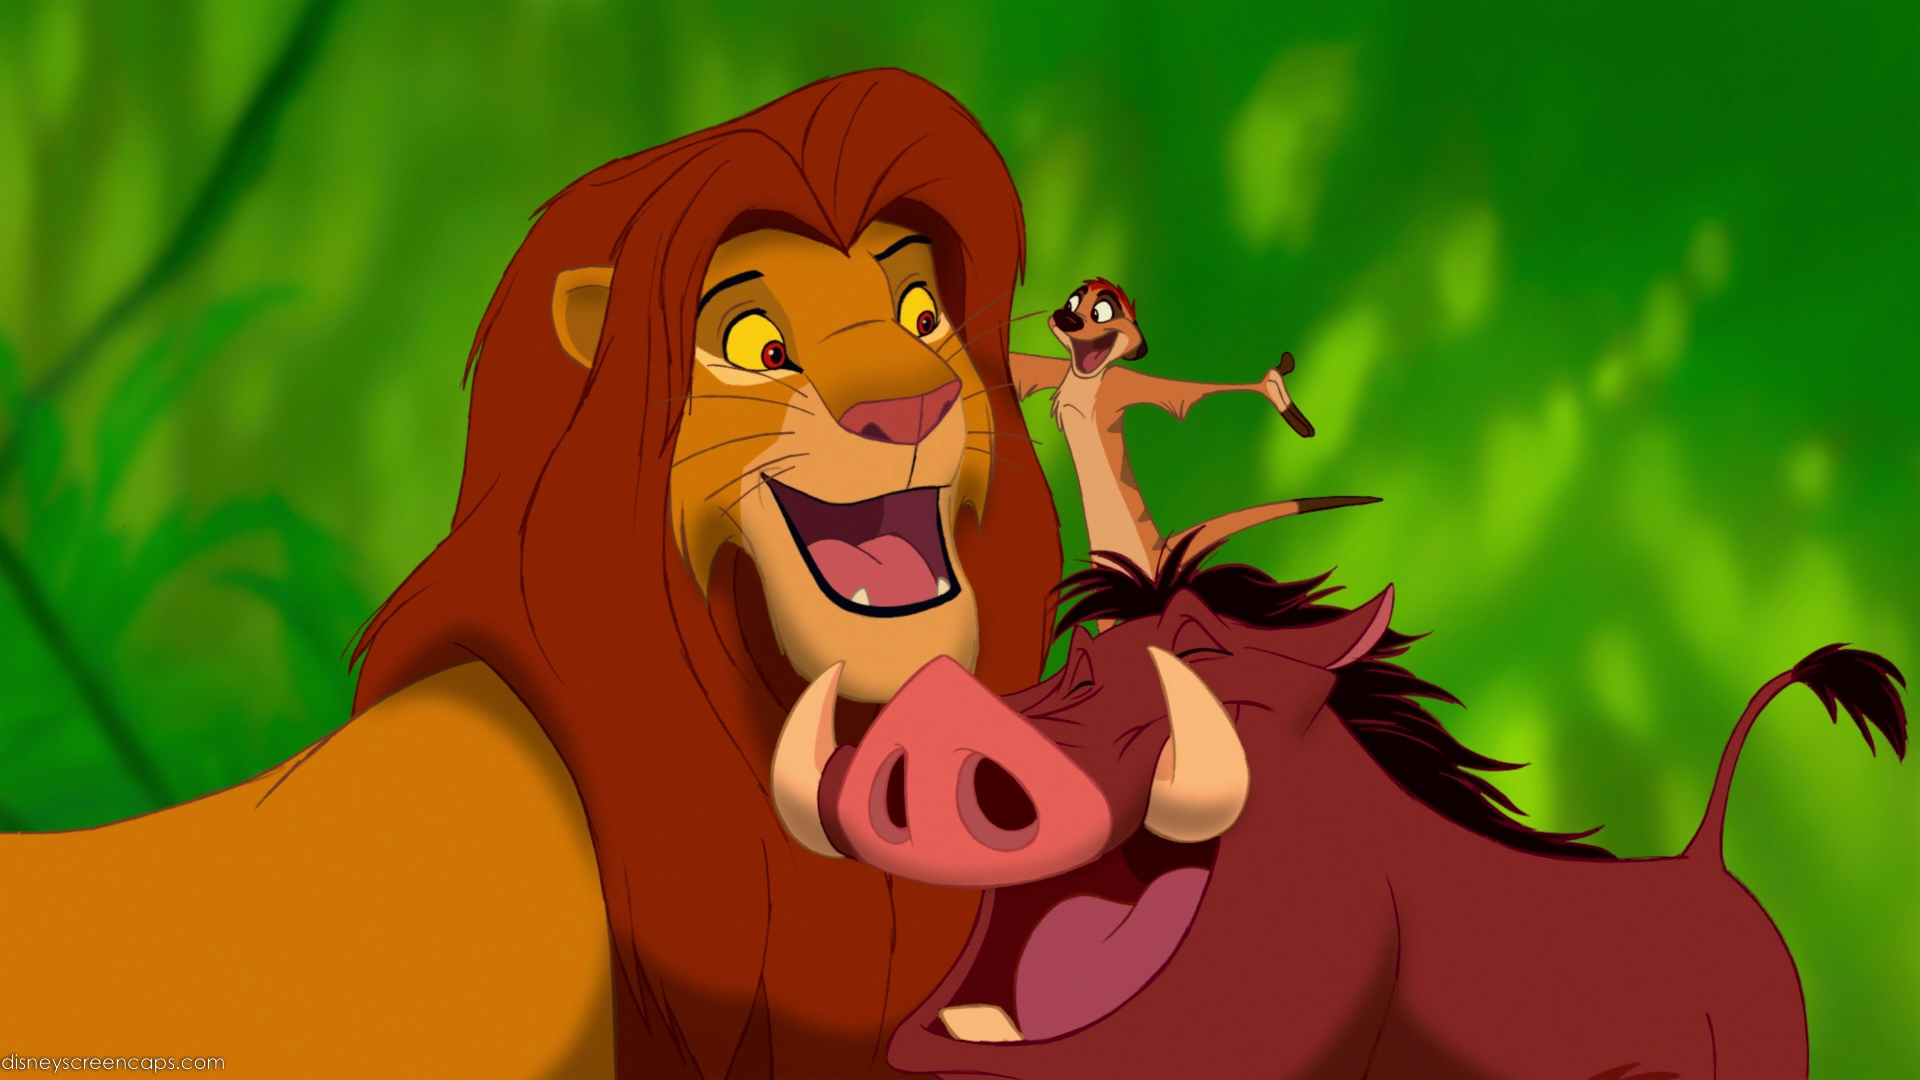 timon and pumba images